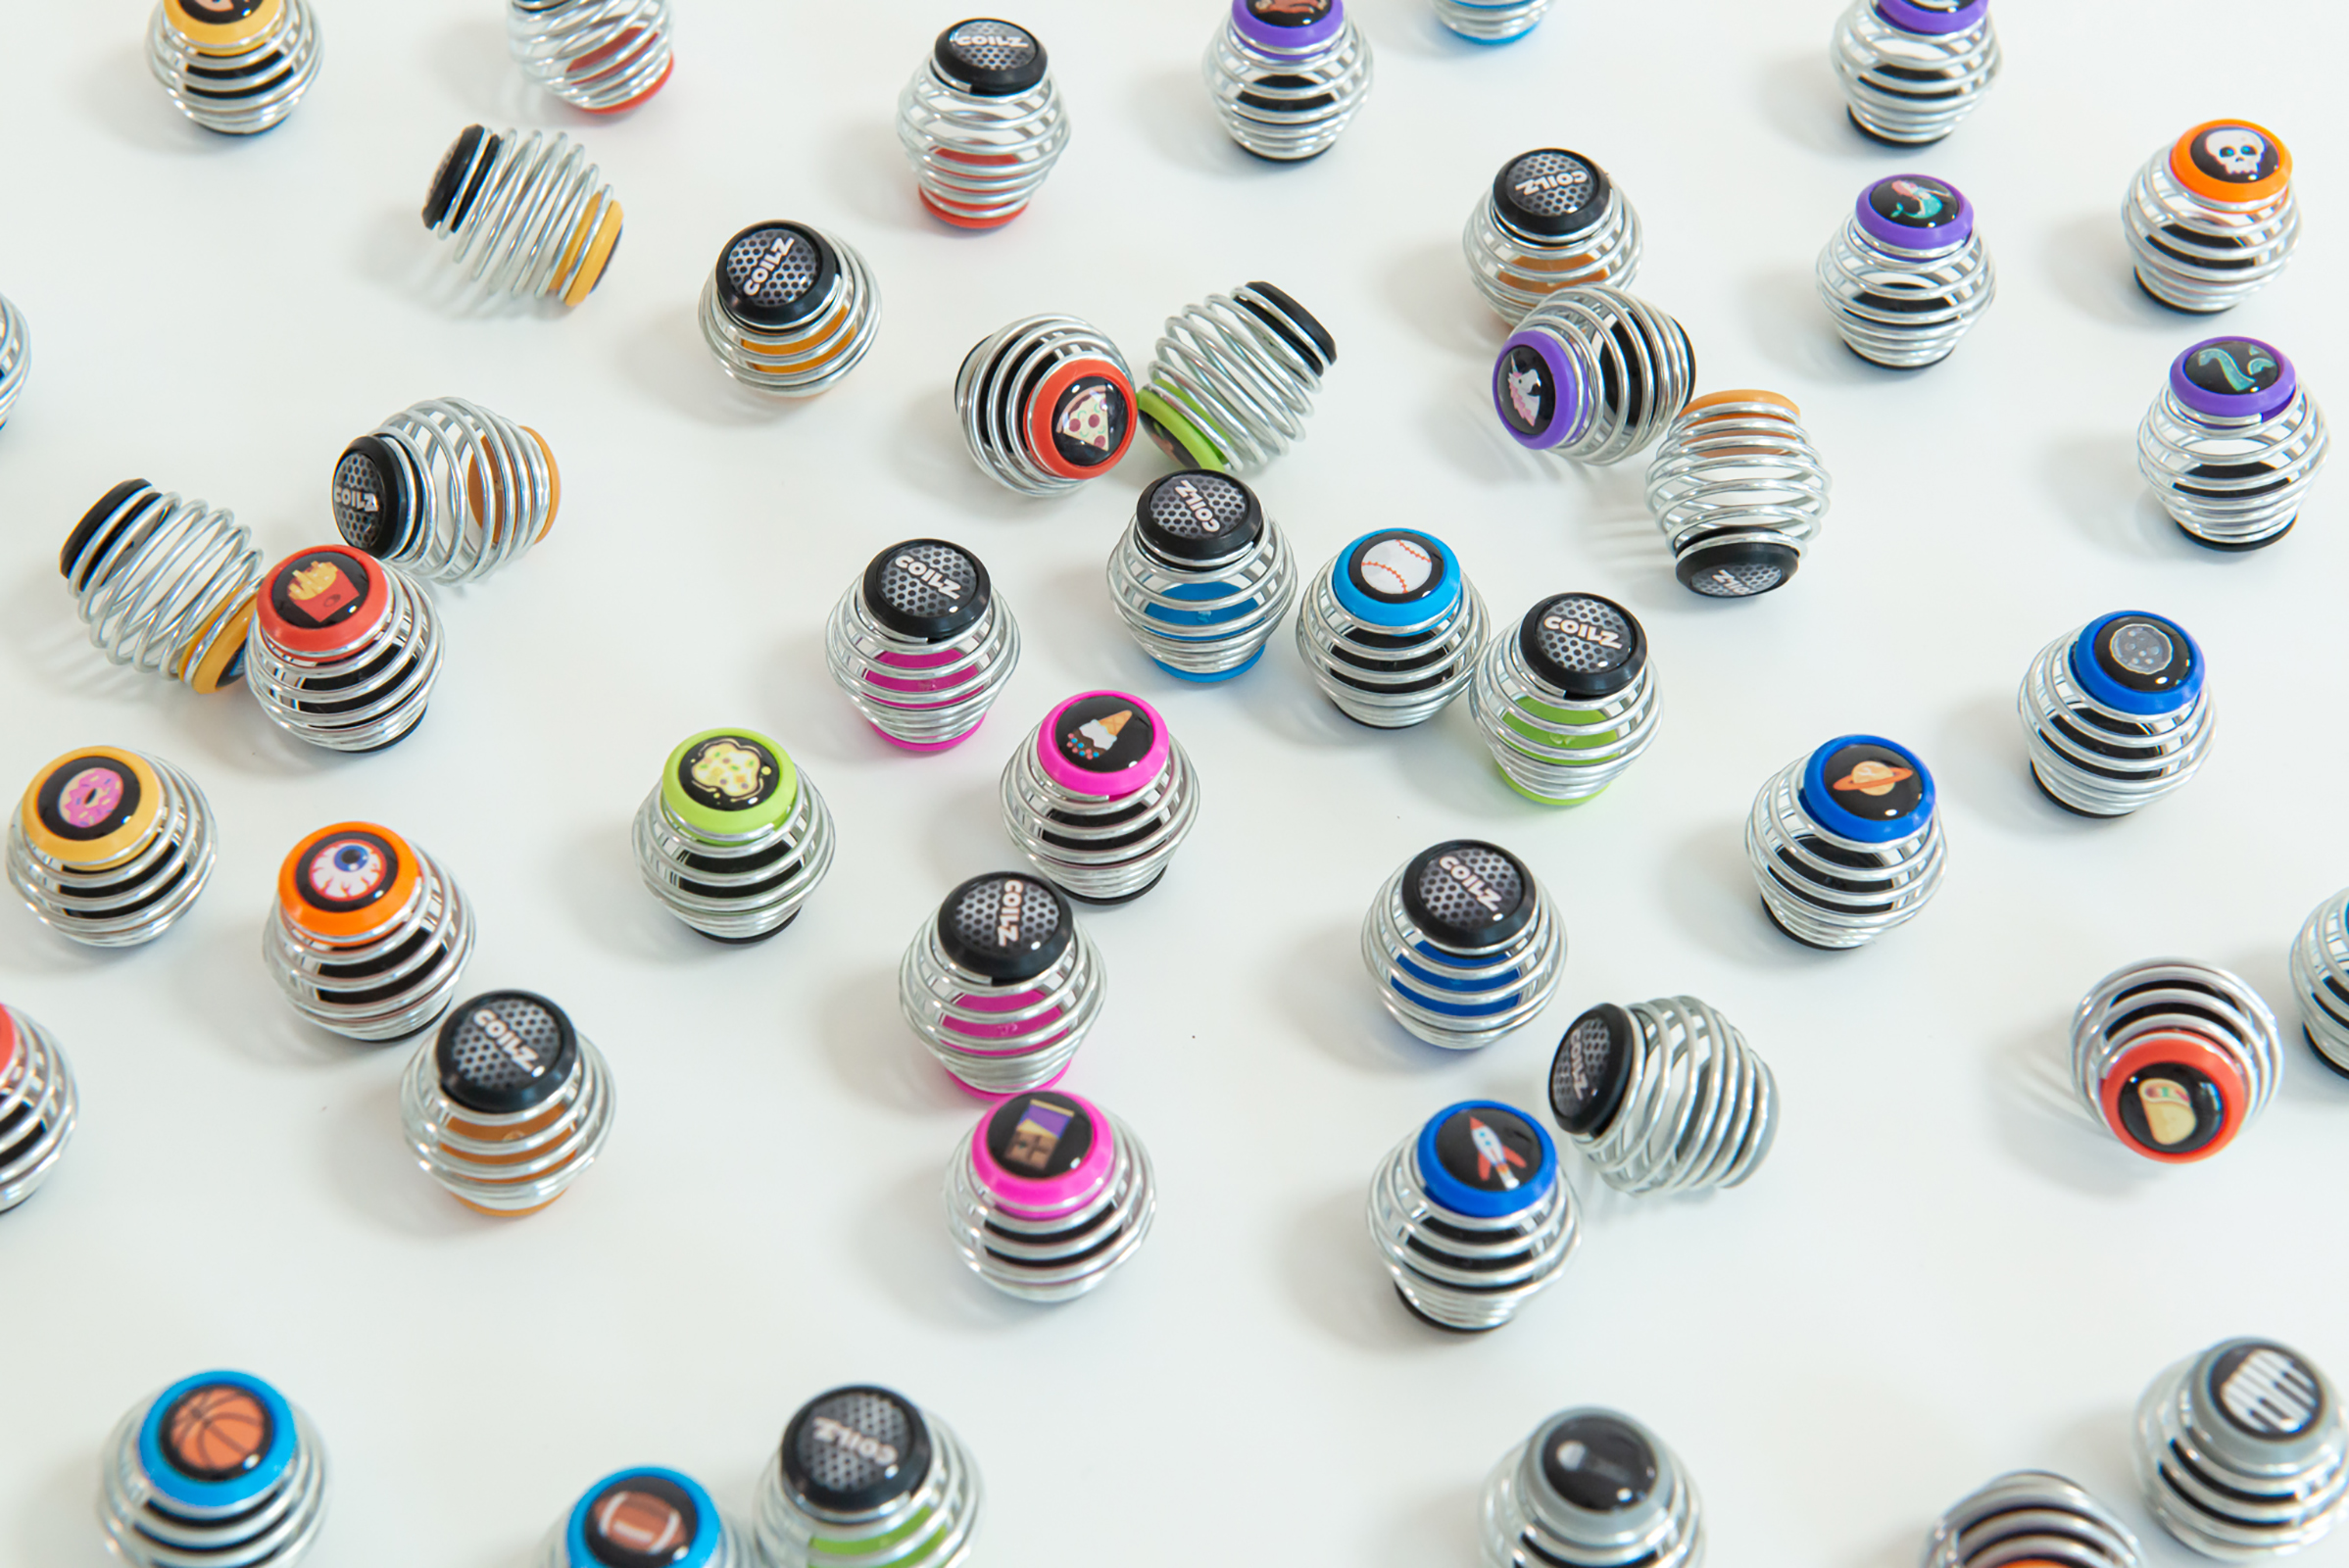 Image 4 Coilz Collection 3 - hi-res.jpg